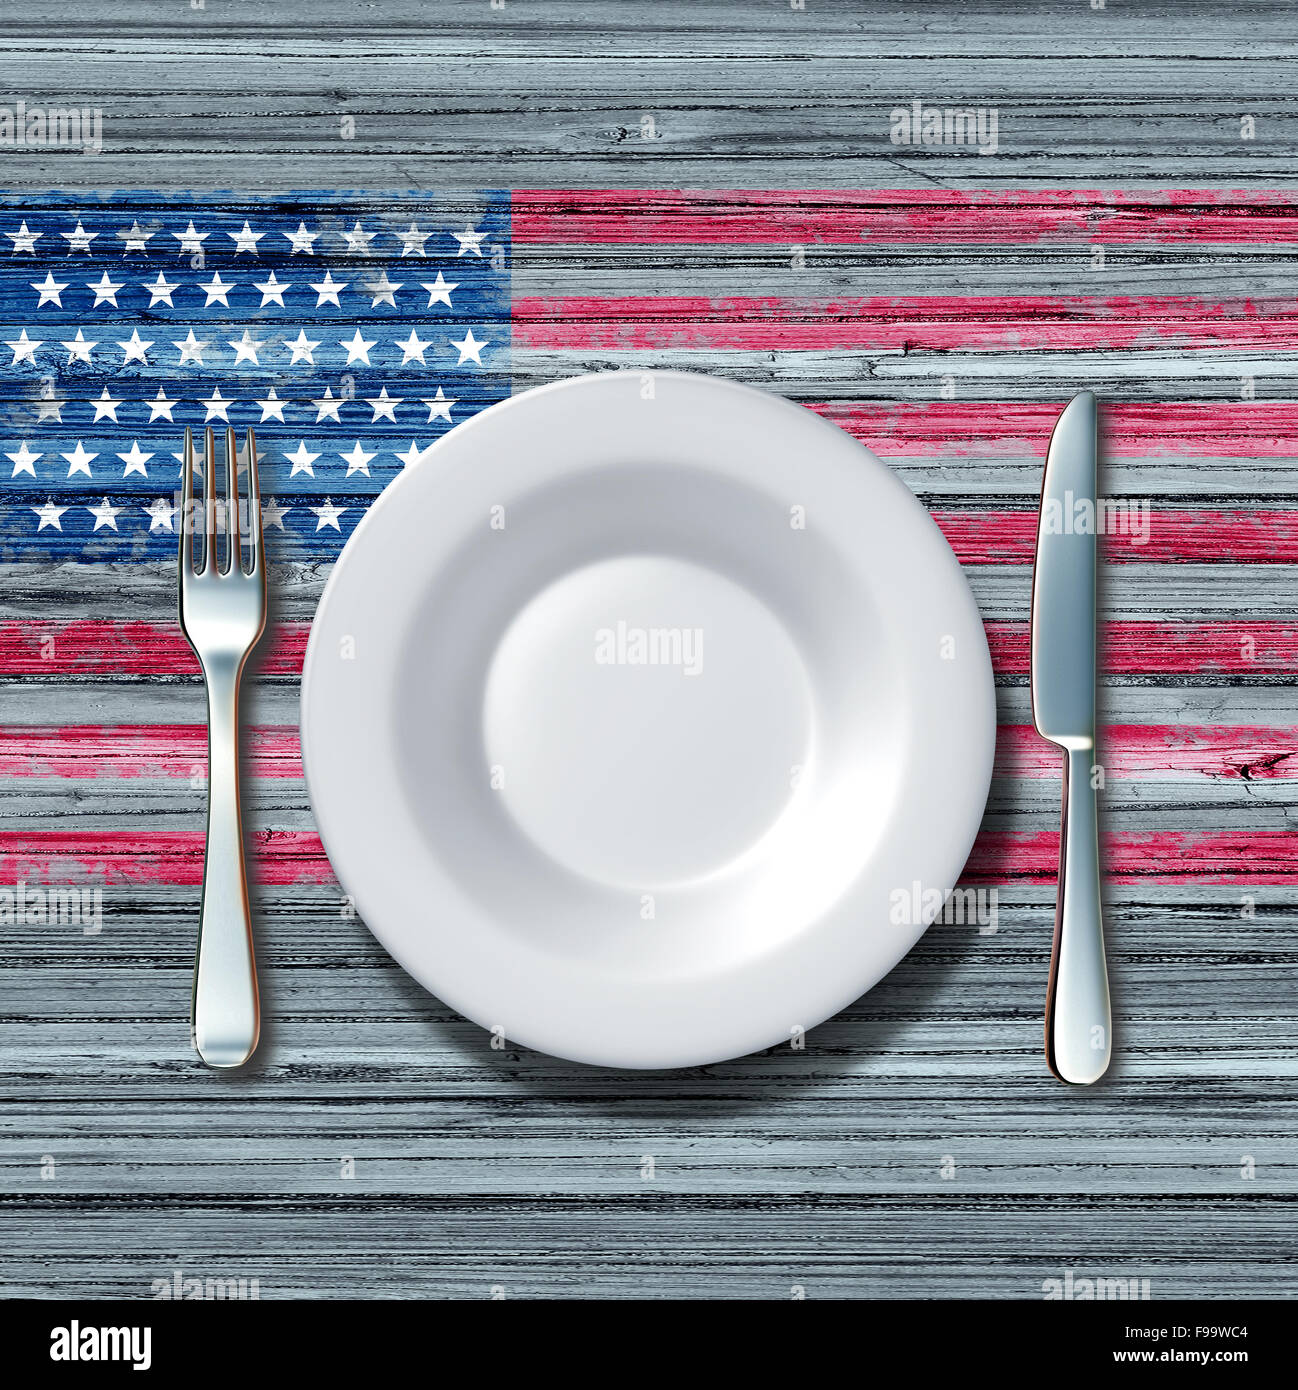 American cuisine food concept as a place setting with knife and fork on an old rustick wood table with a symbol - Stock Image